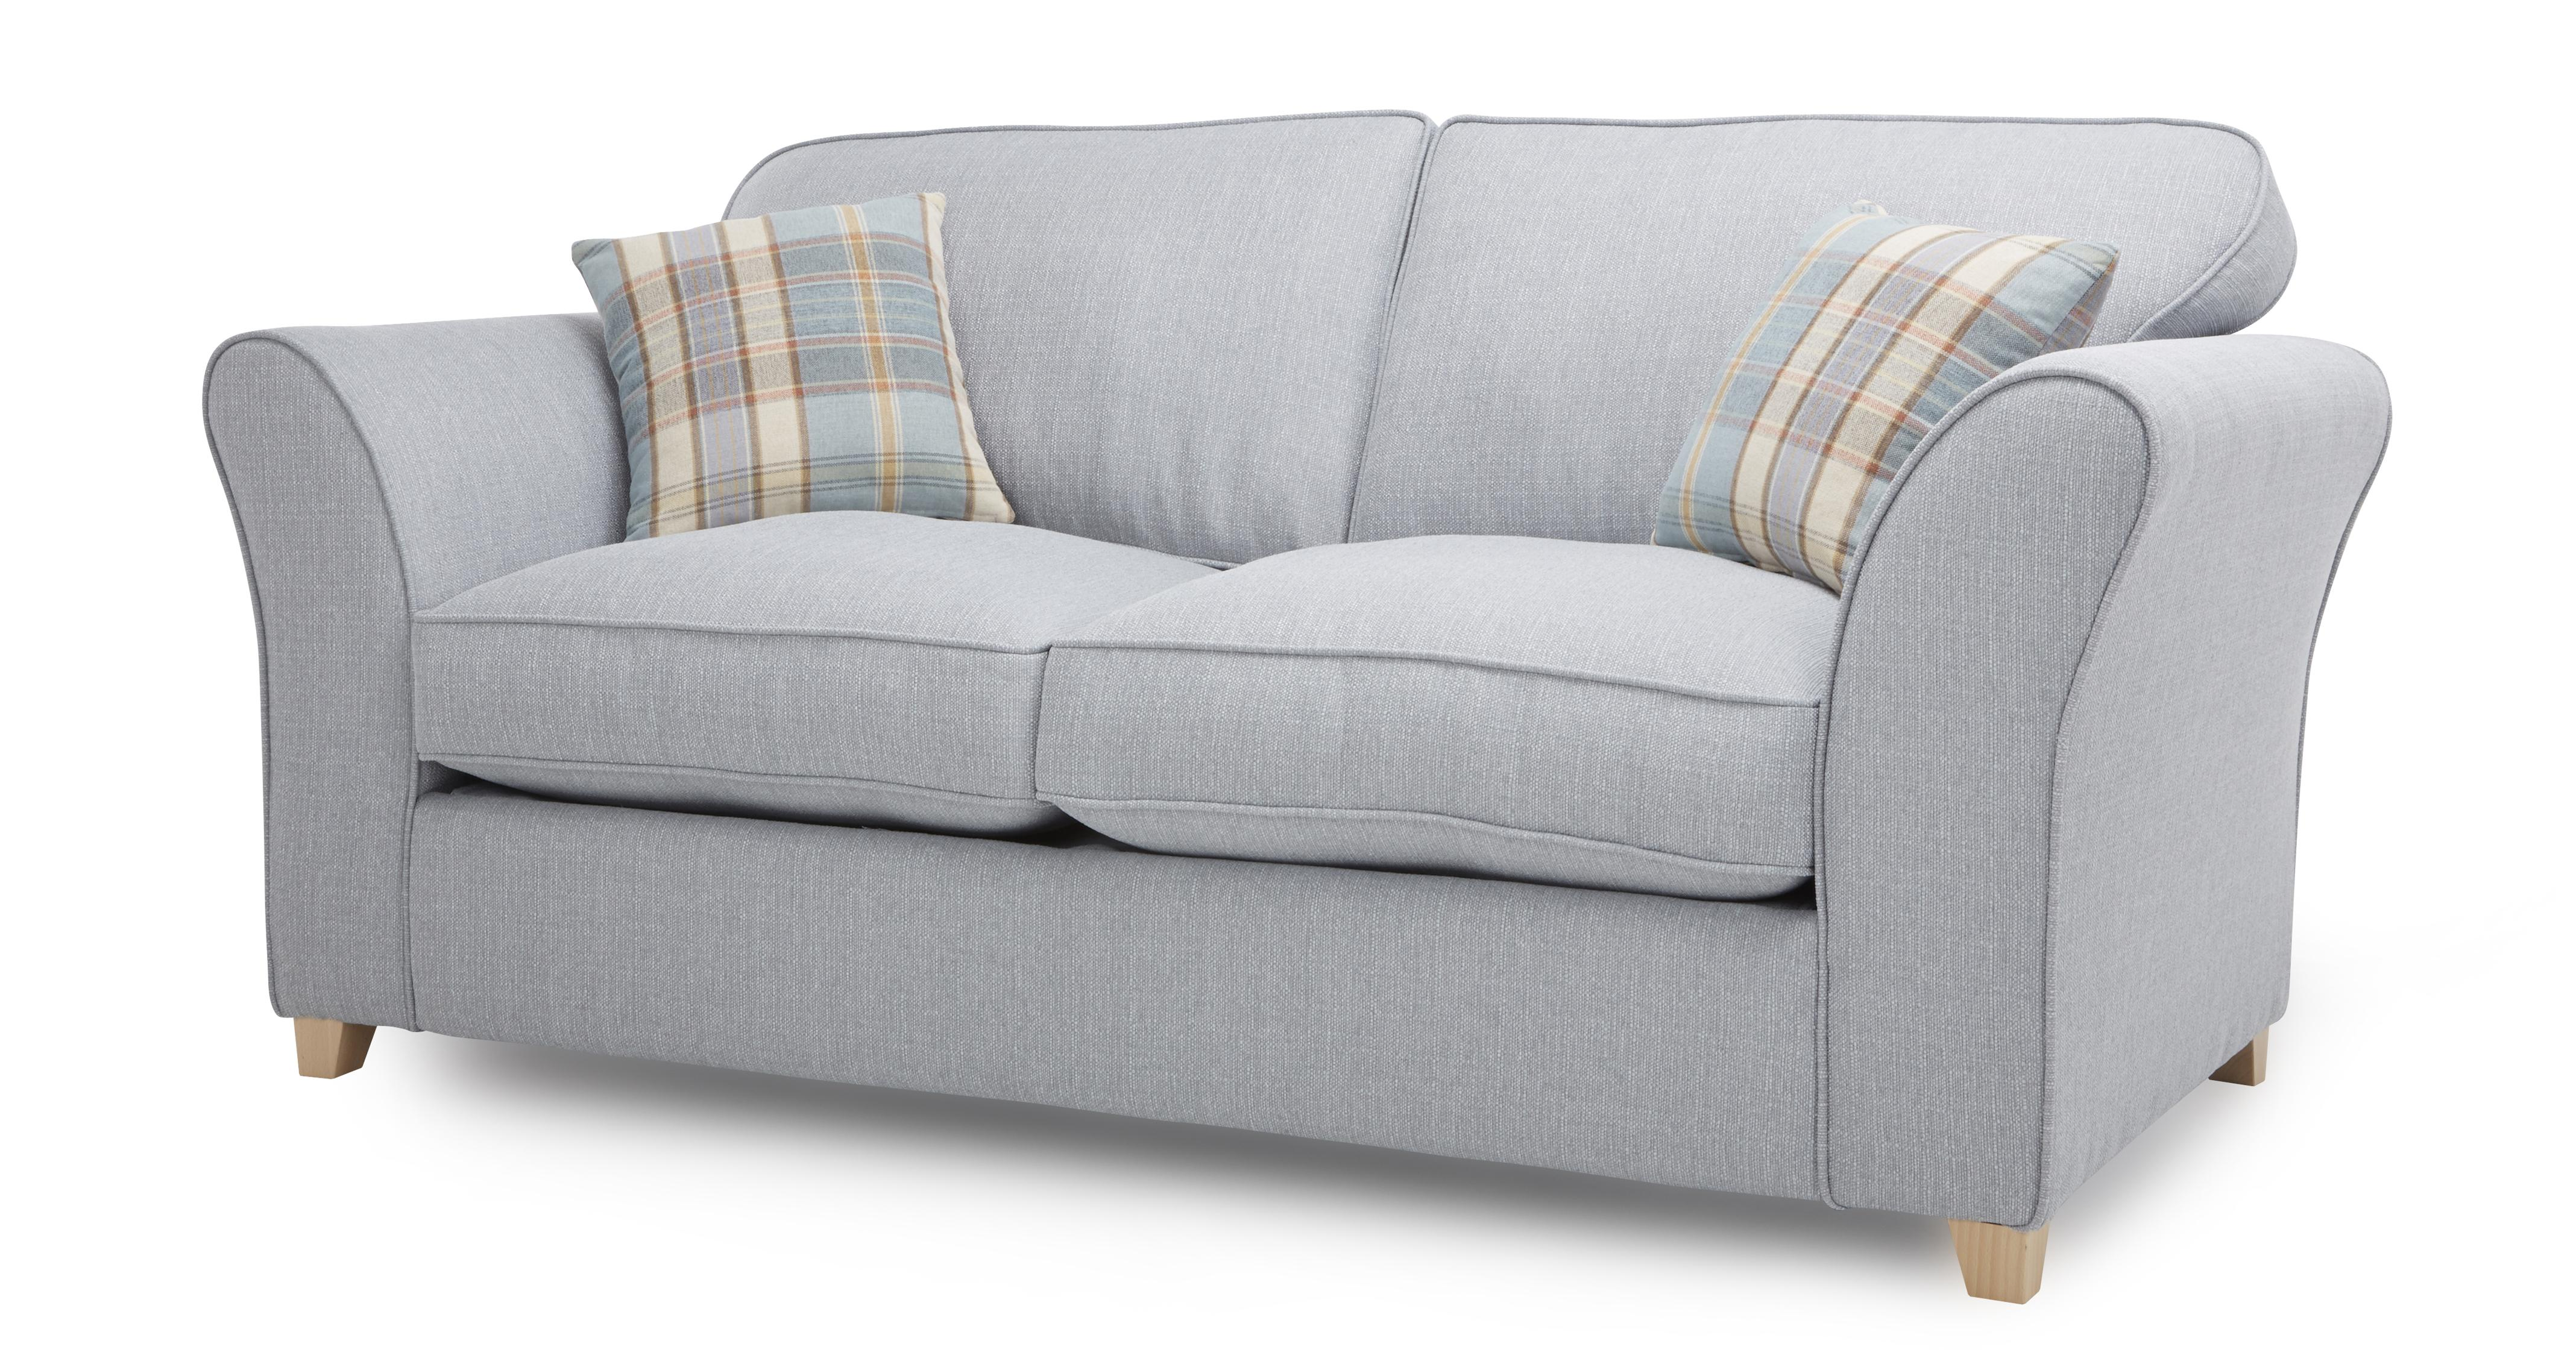 patterned sofas uk cream faux leather sofa set dfs brixham blue fabric 2 seater bed and pattern